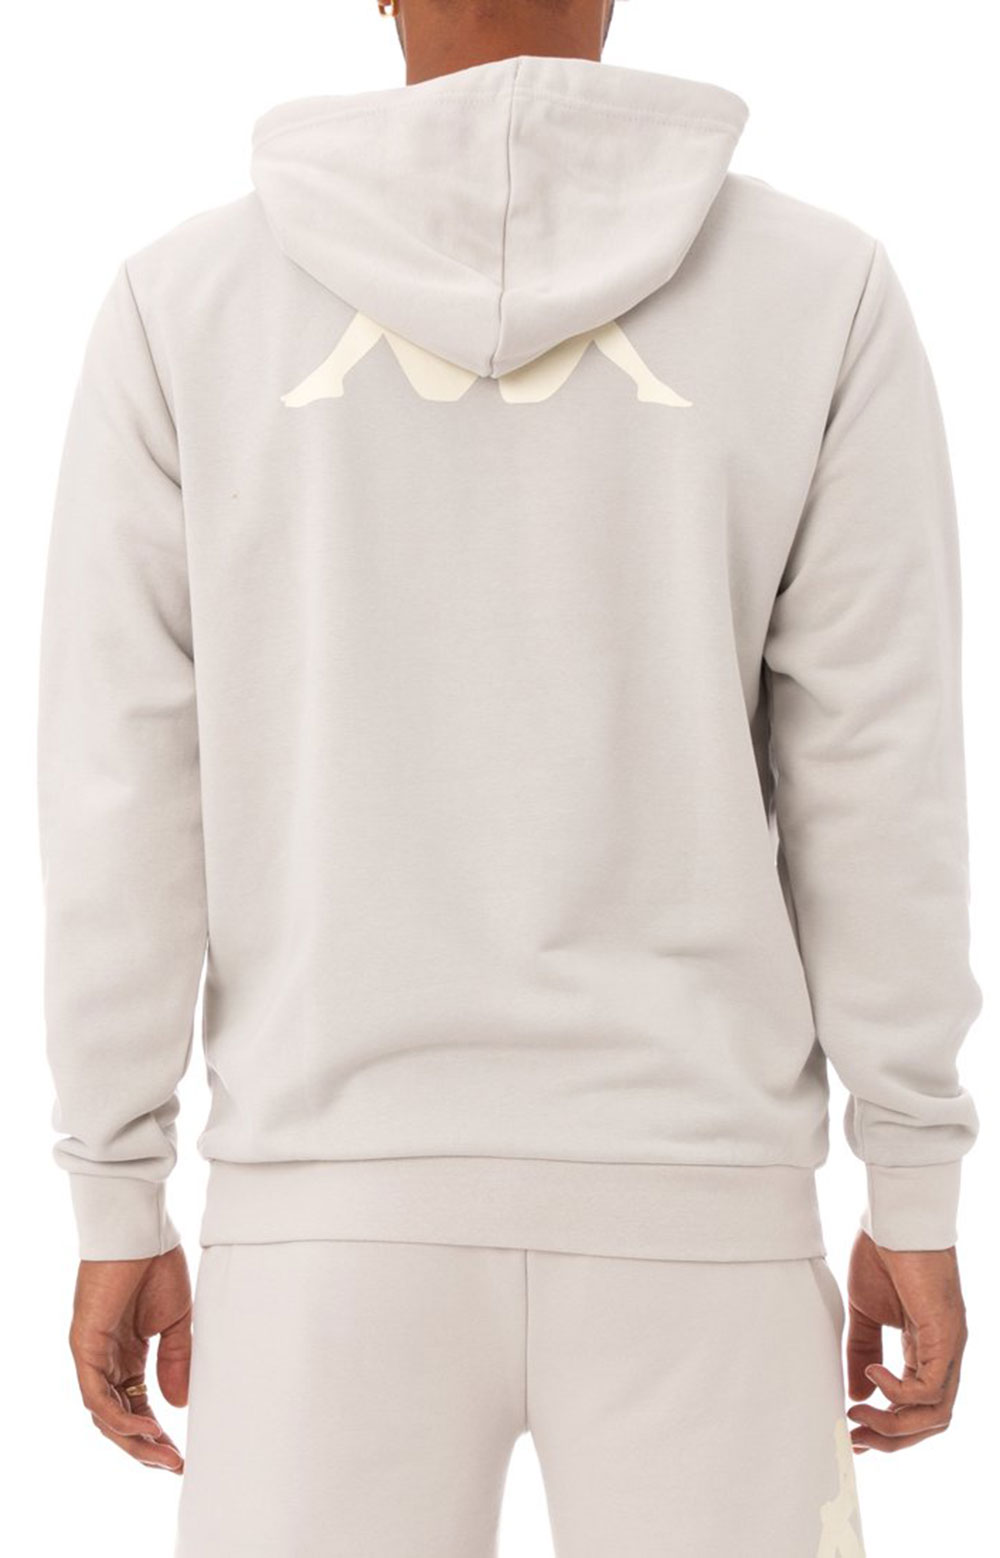 Authentic Haris Pullover Hoodie - Grey Silver 4